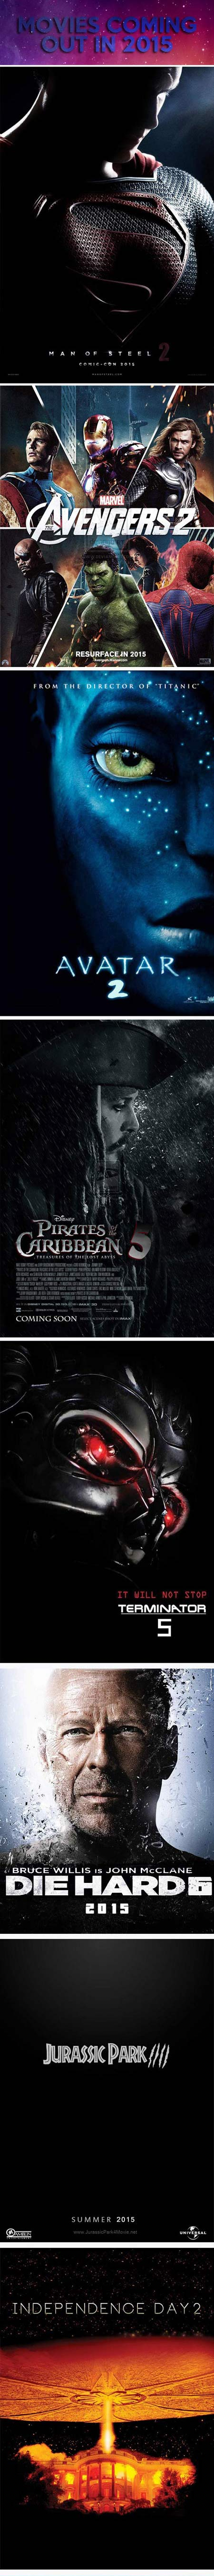 Movies coming out in 2015...